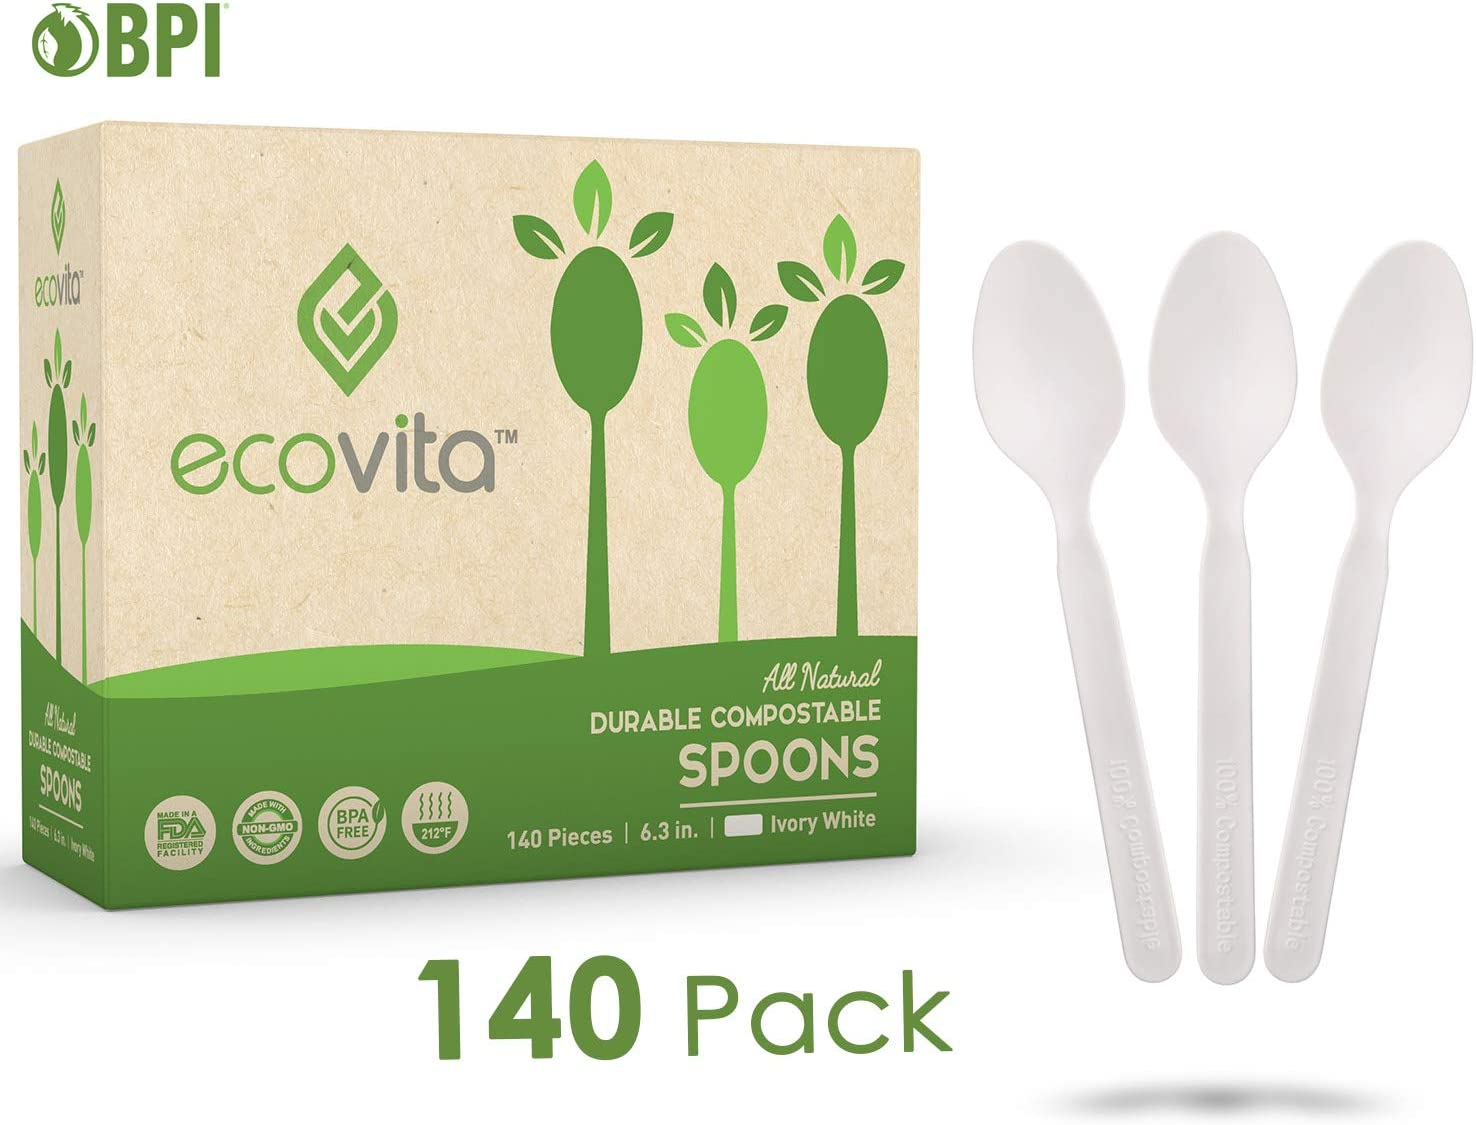 100/% Compostable Plastic Silverware Large Premium Heavy-Duty Flatware Utensils Eco Friendly BPi Certified Stack Man Disposable Spoons 6.5 Inch Organic Natural Wood Color Tableware 140 Pack